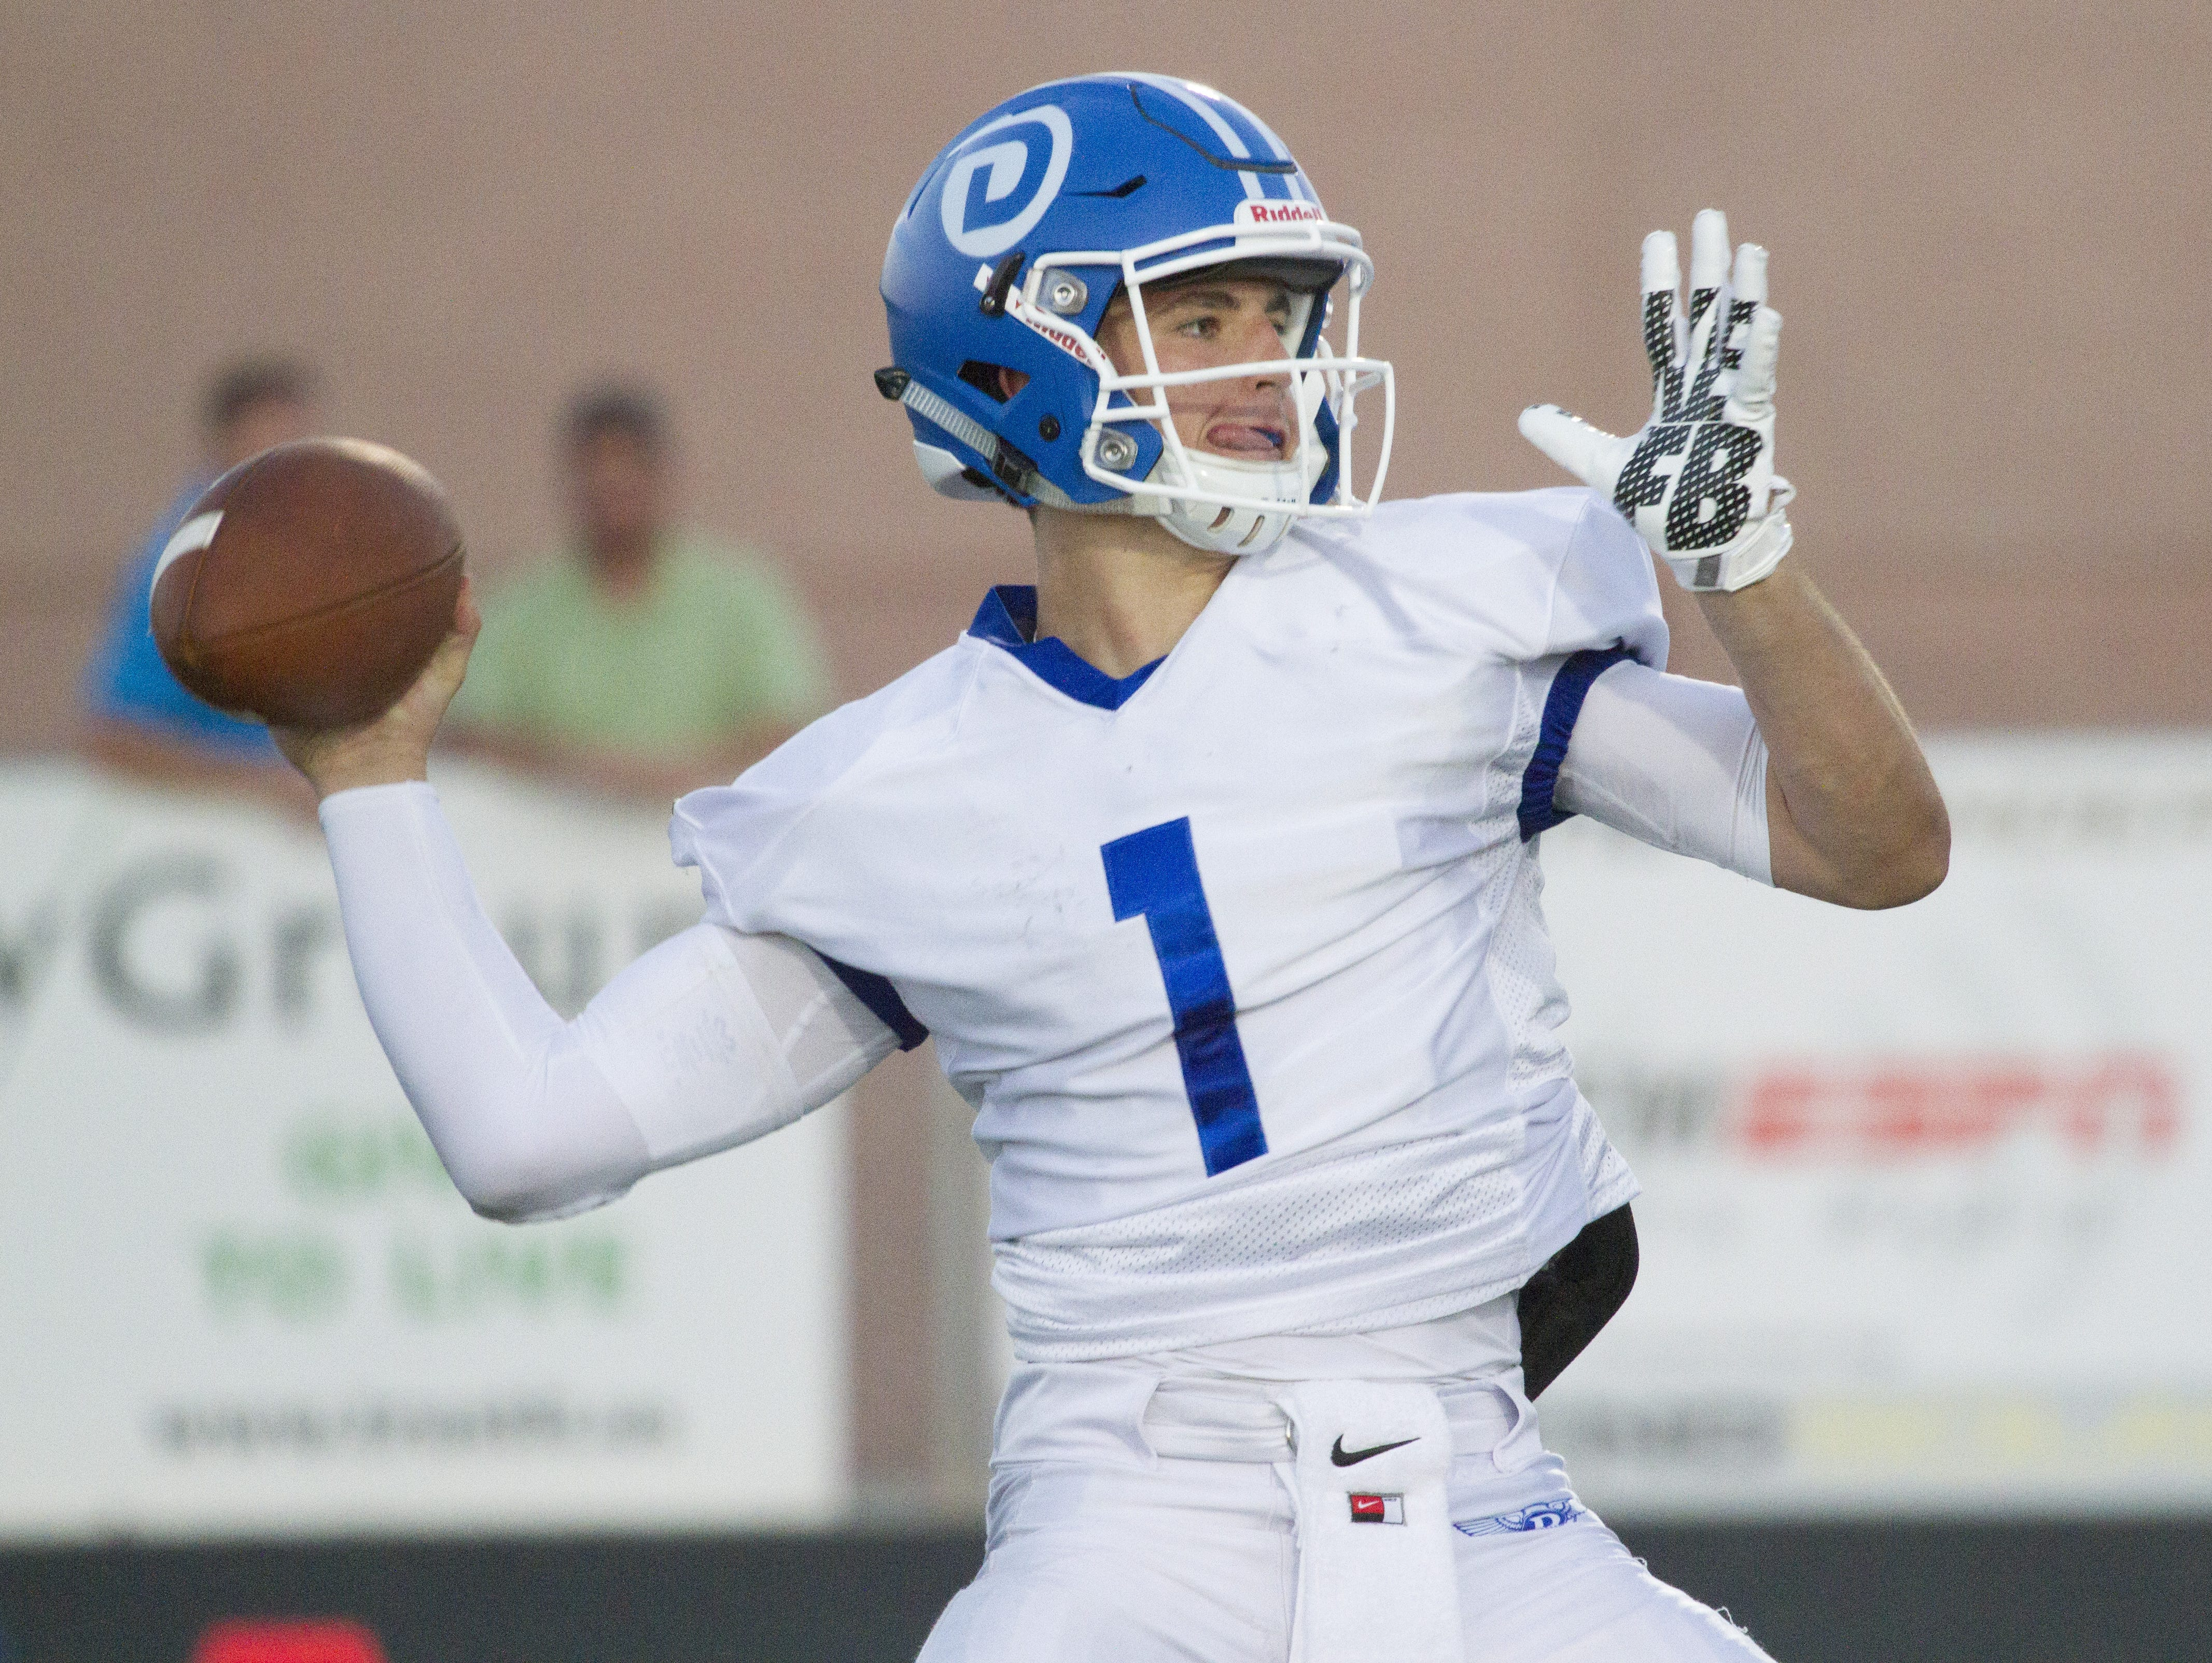 Dixie senior quarterback Zak Harrah has the Flyers at 5-1 on the year and in first place in 3AA South.